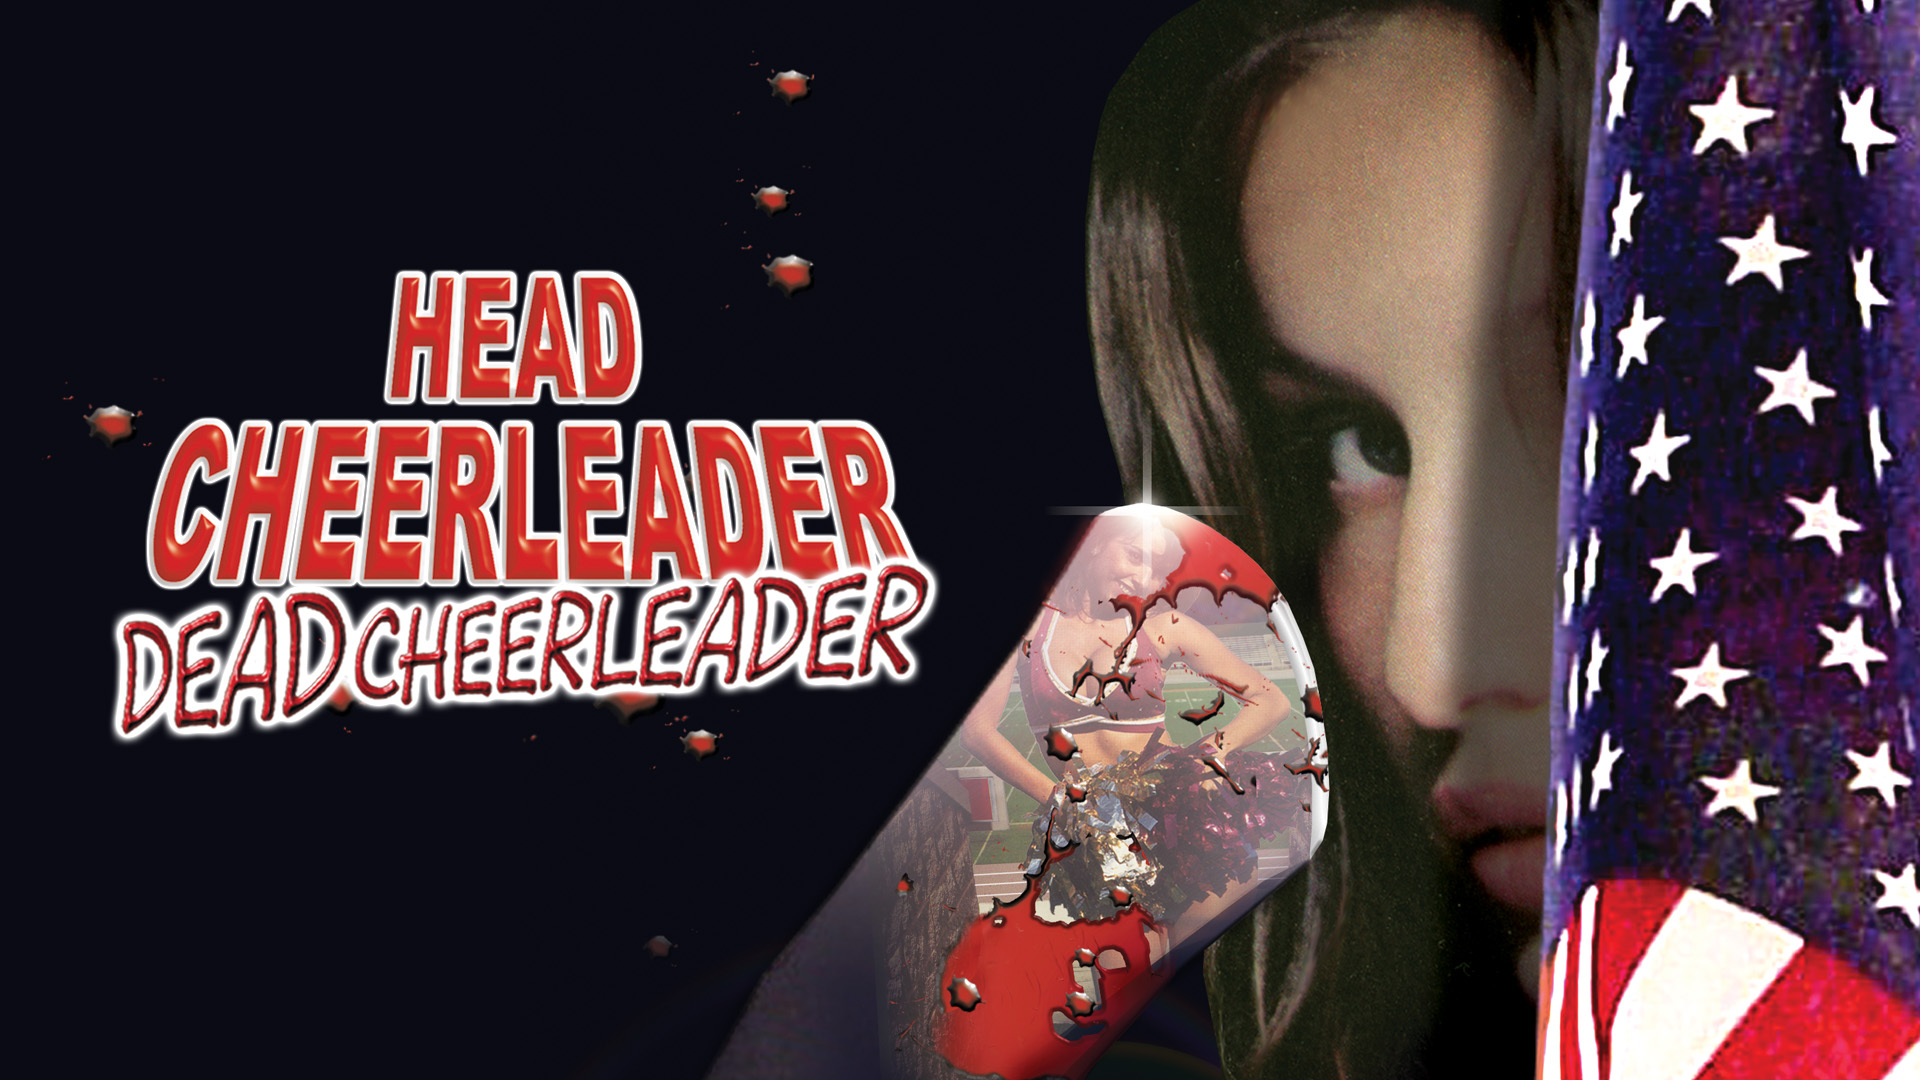 Head Cheerleader, Dead Cheerleader